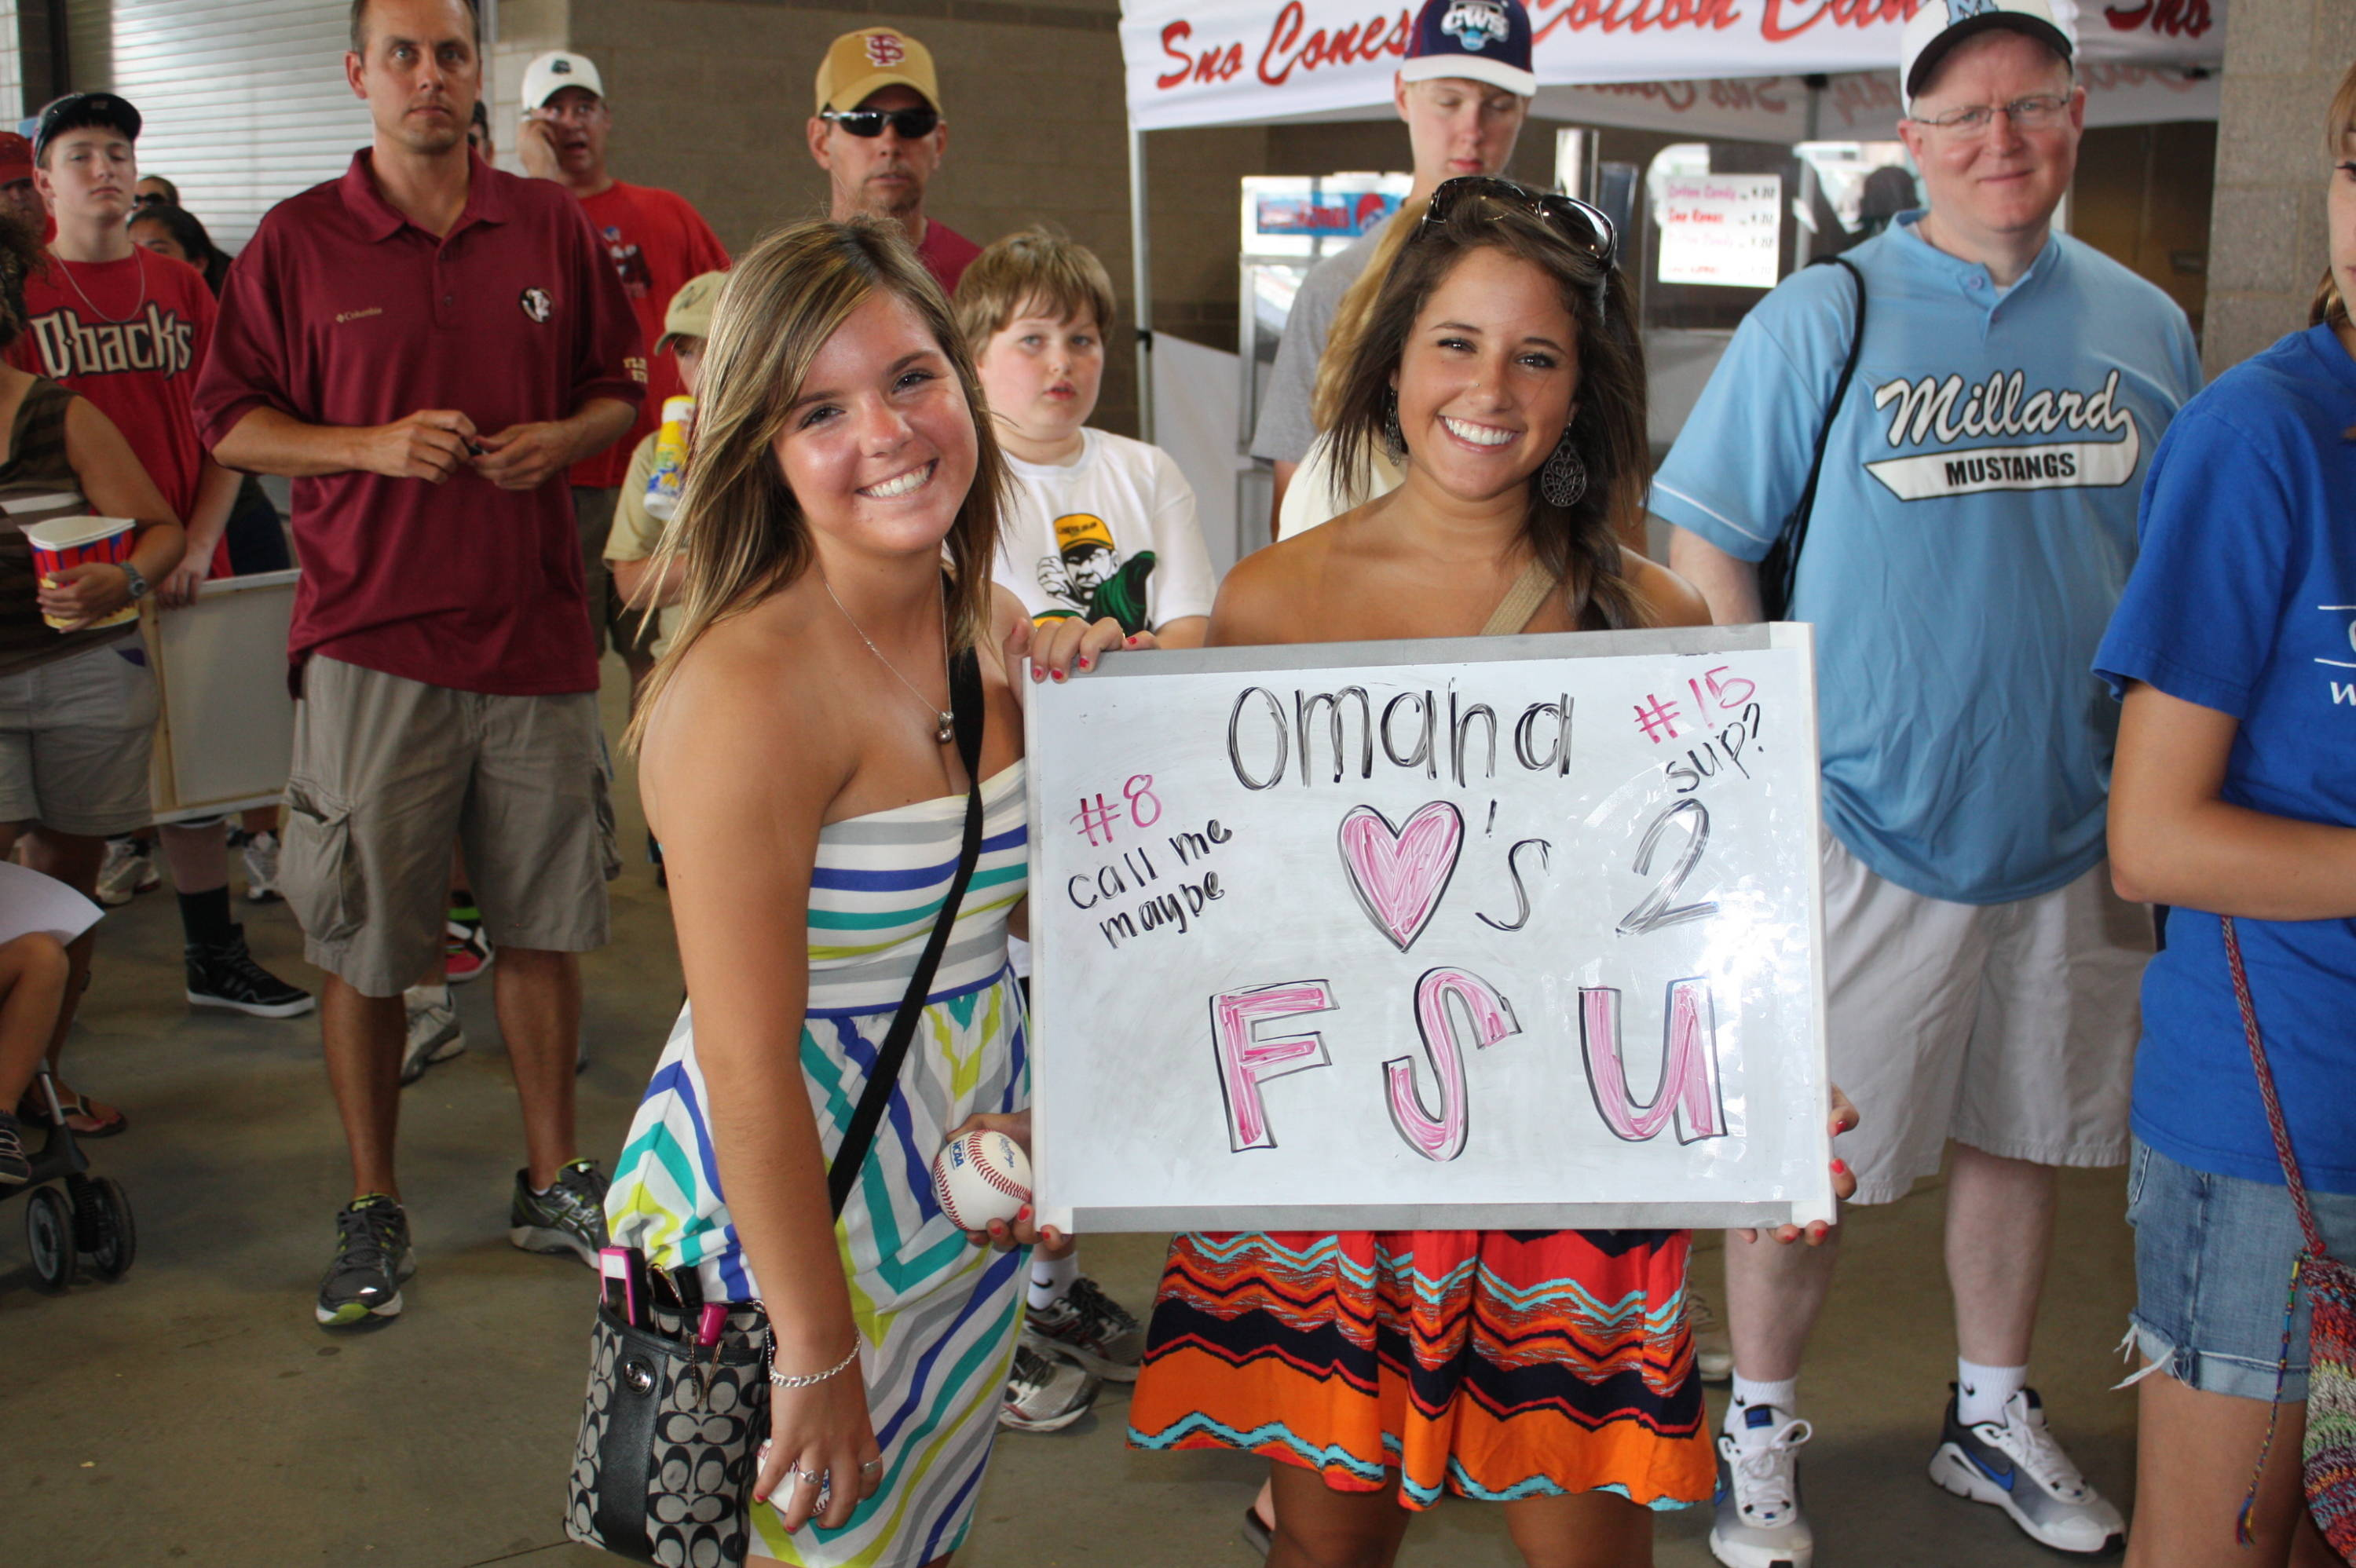 Fans waiting to greet the Seminoles during the CWS autograph session